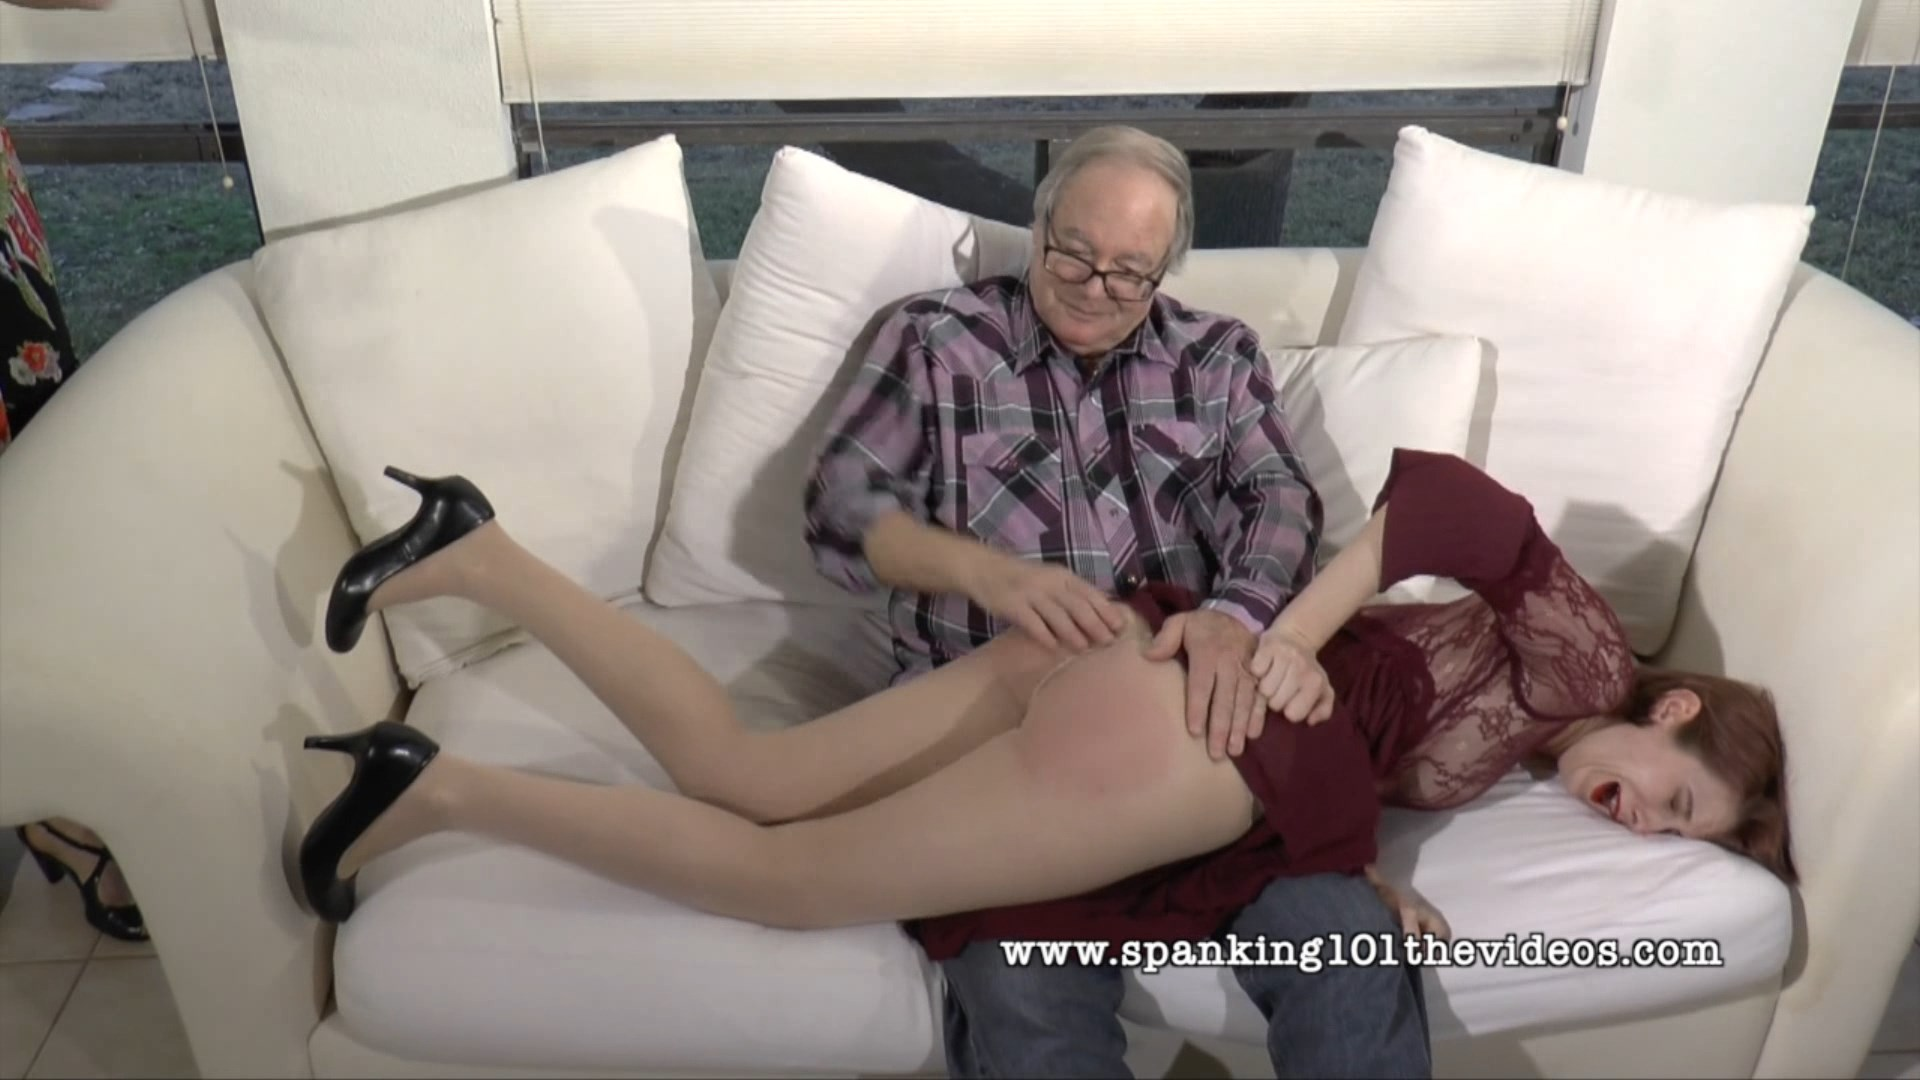 Spanking 101 The Videos – WMV/Full HD –  Ava Nyx – Like Mother, Like Daughter